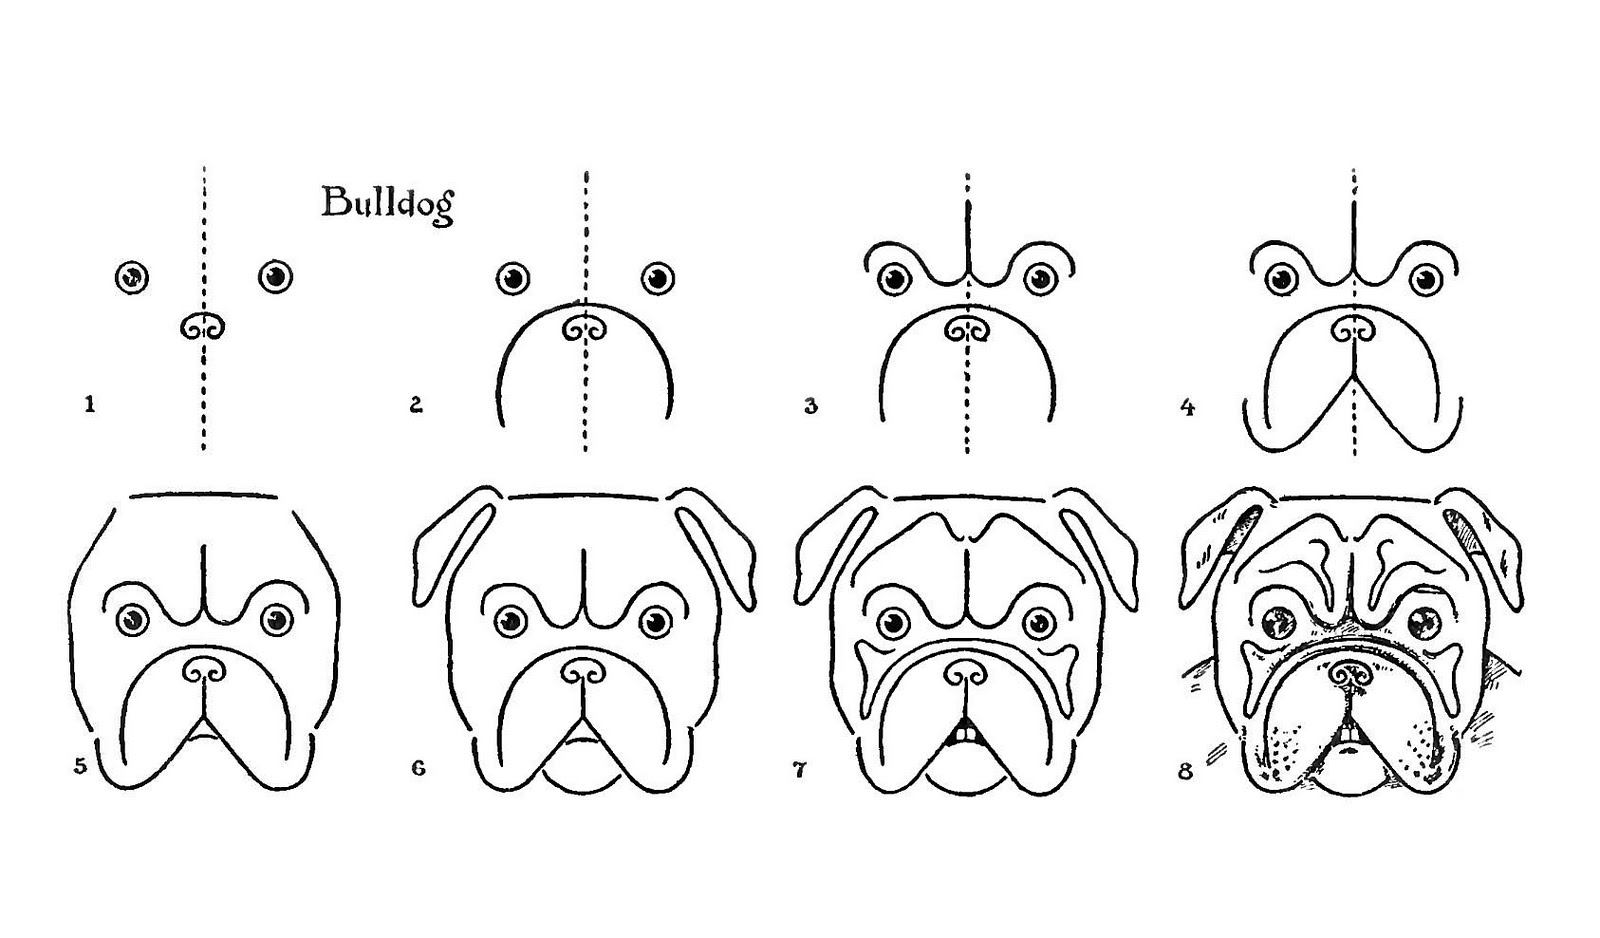 Line Drawing Baby Face : Vintage kids printable draw a bulldog the graphics fairy